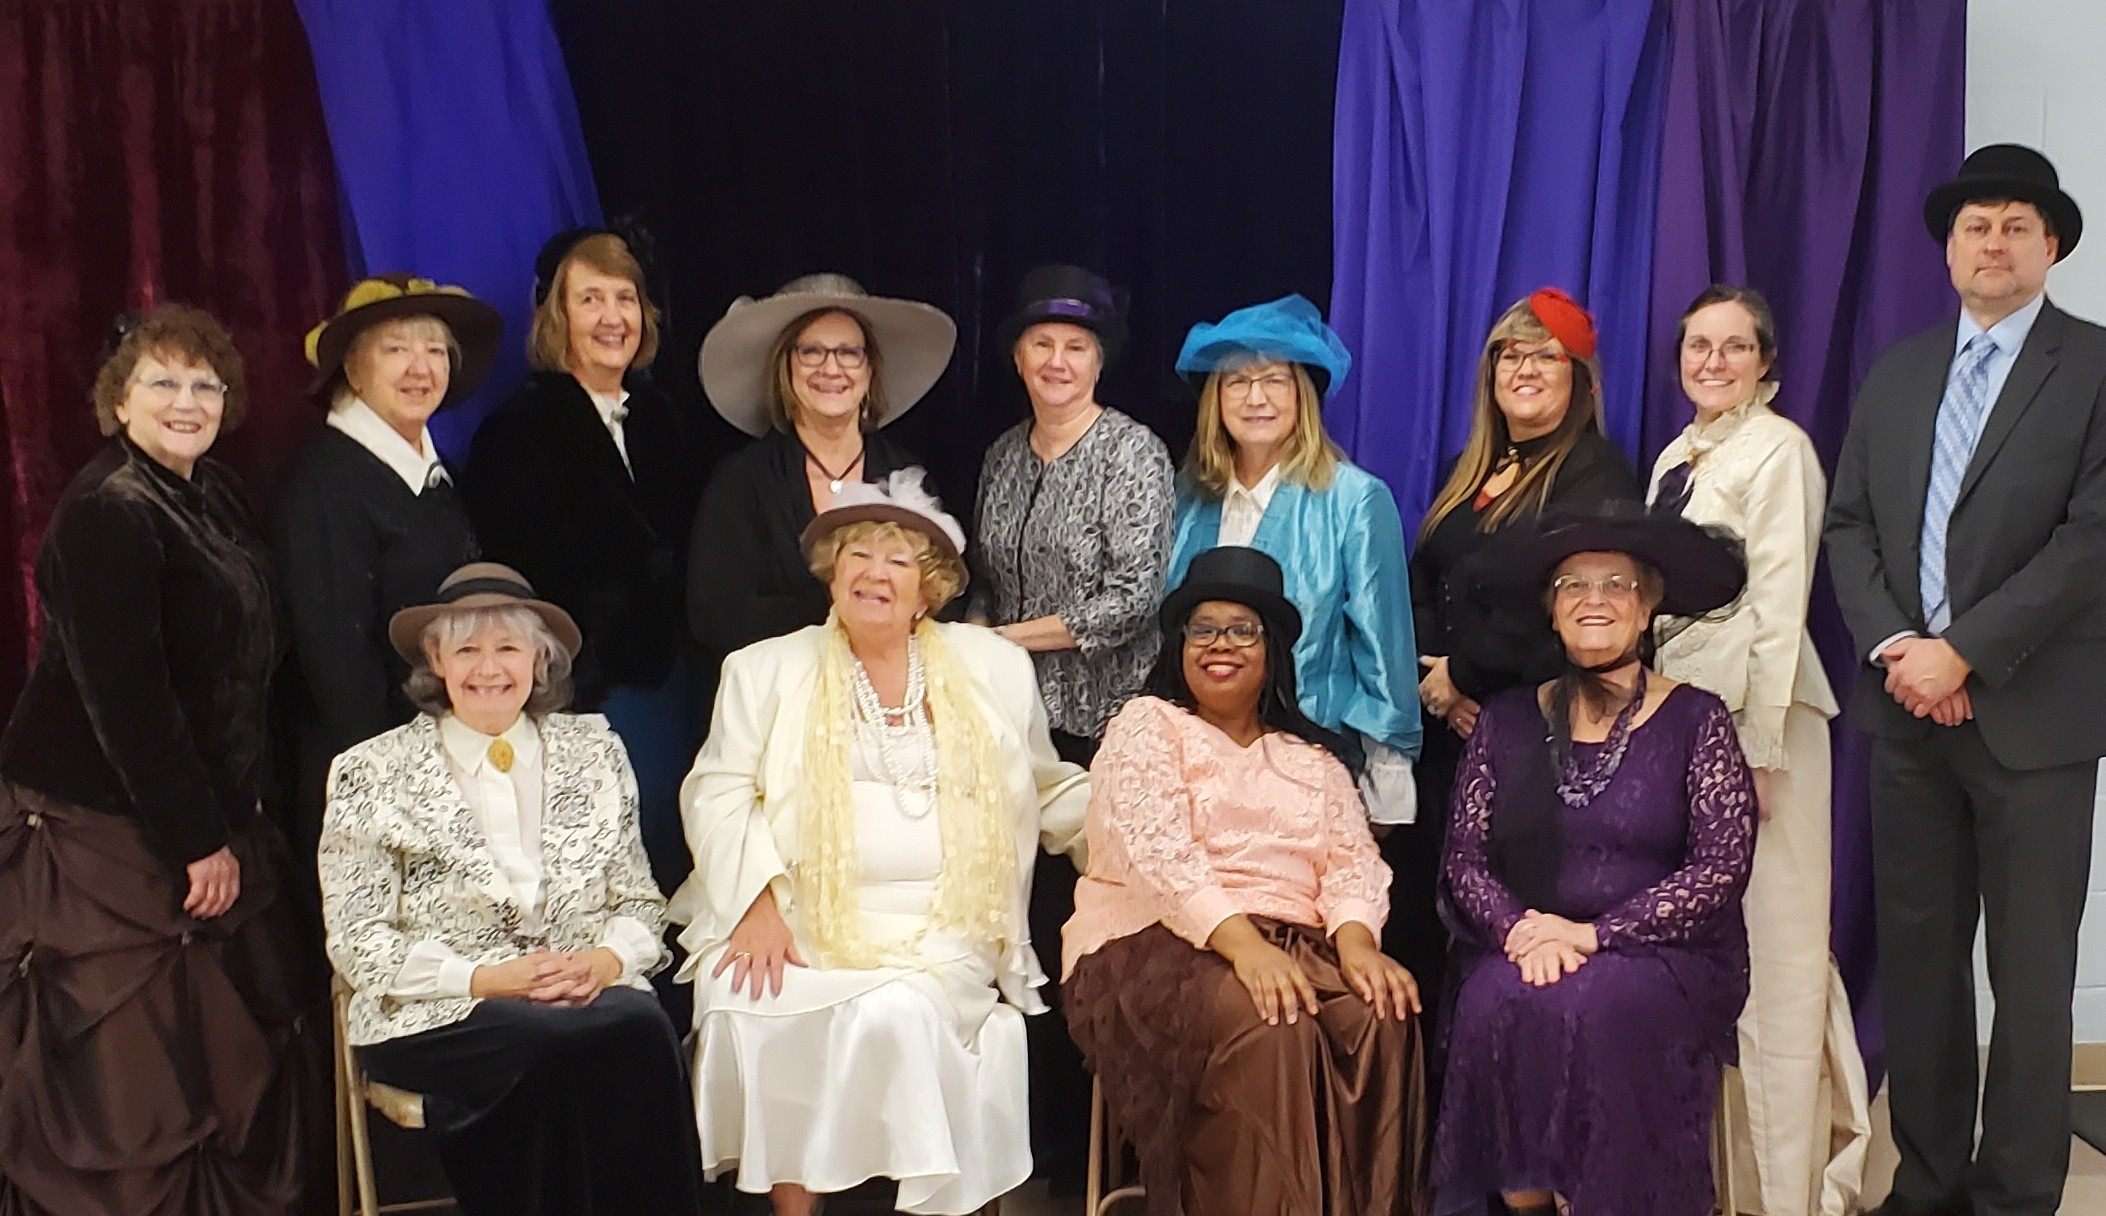 Friends of the Library members and some staff and board members helped make the 9th Annual Victorian Tea a huge success!